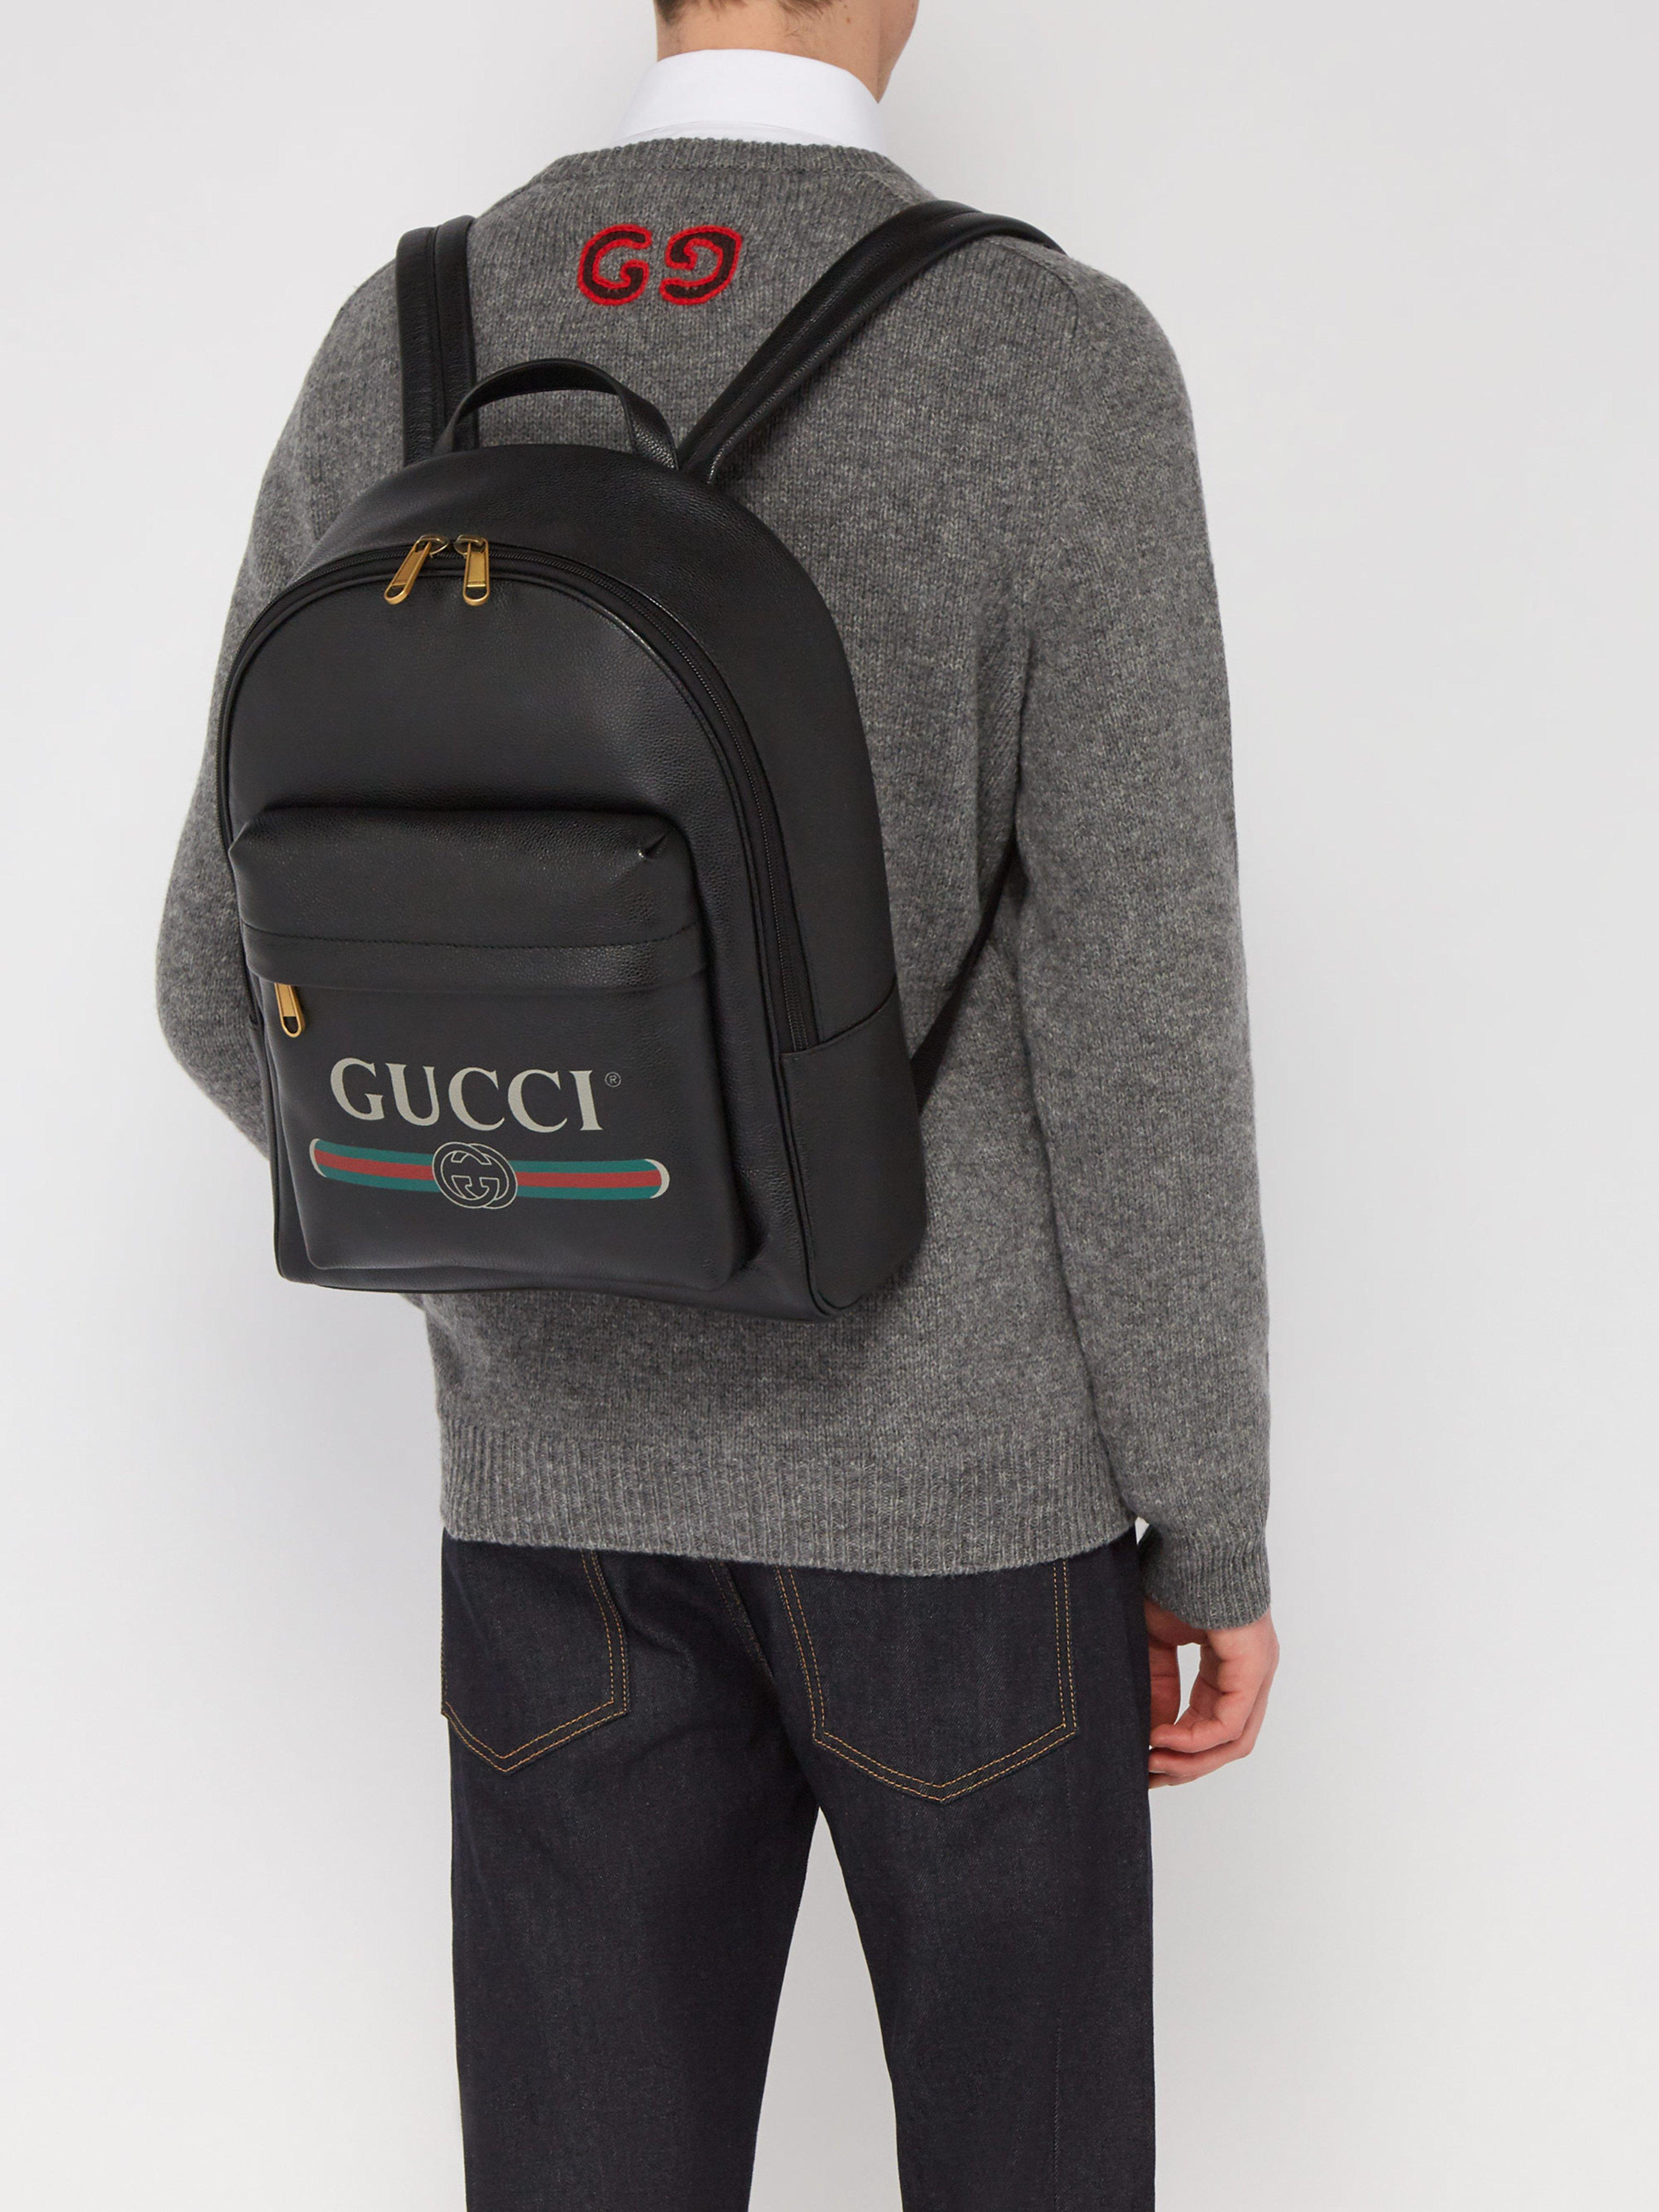 Gucci - Black Logo Printed Leather Backpack for Men - Lyst. View fullscreen af1122be5649e